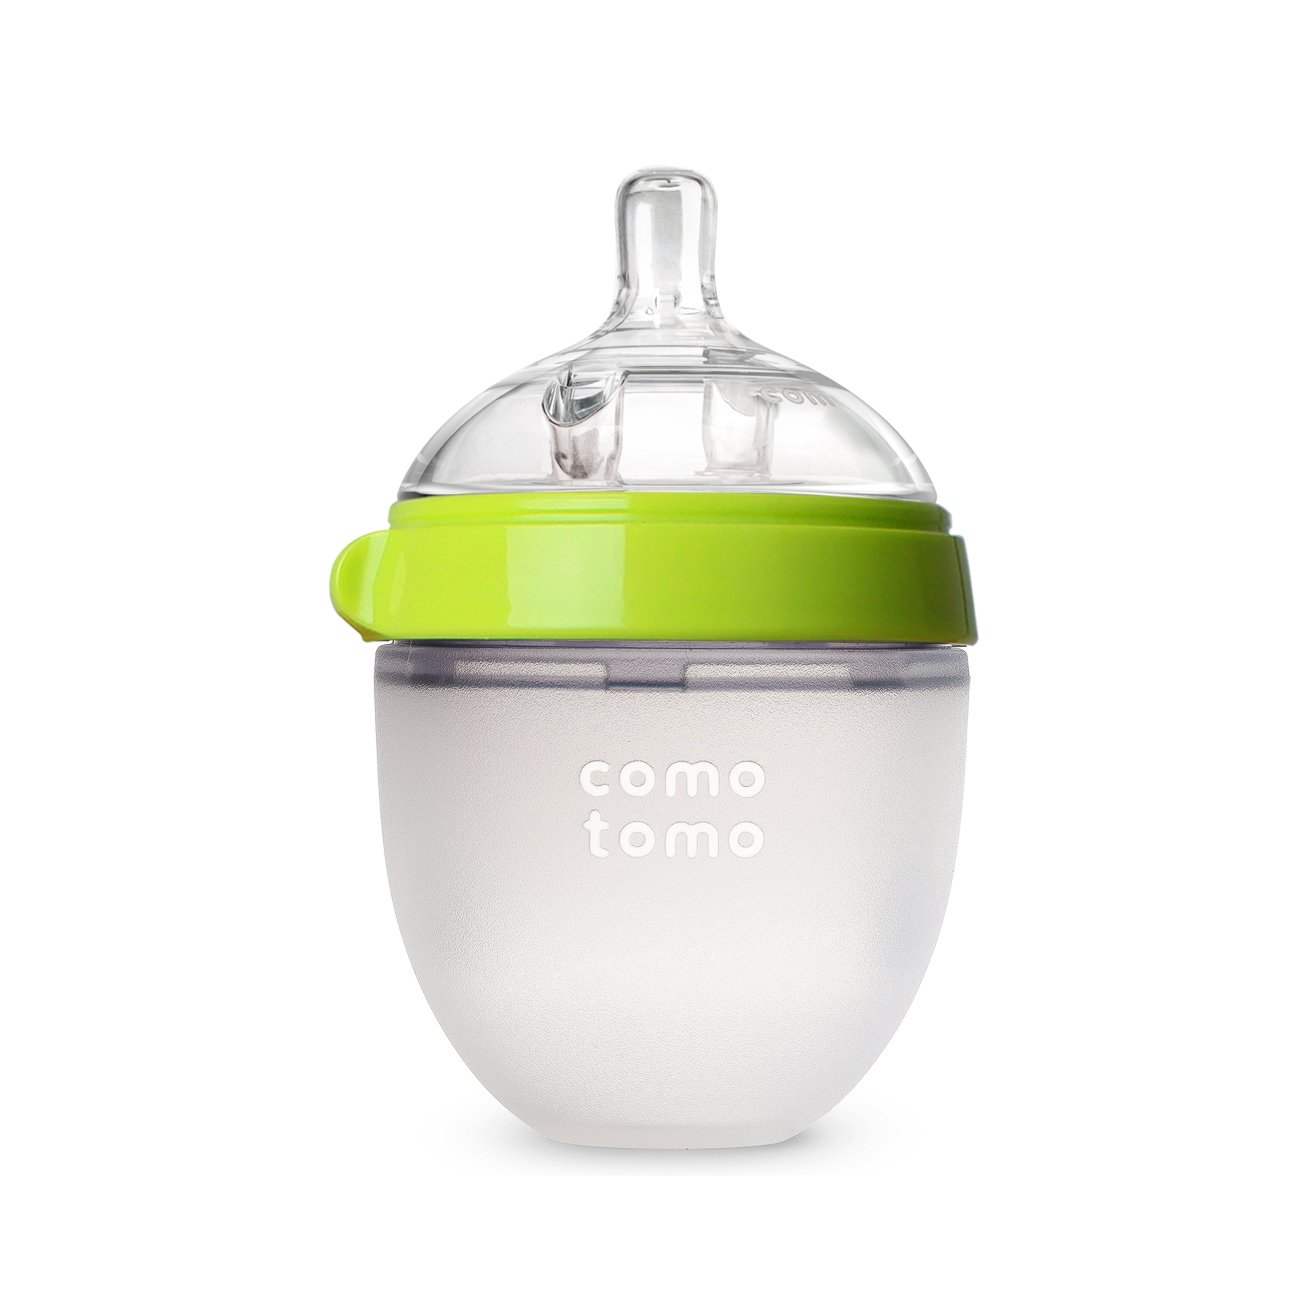 Comotomo Natural Feel Baby Bottle, Green, 8 Ounces 250G